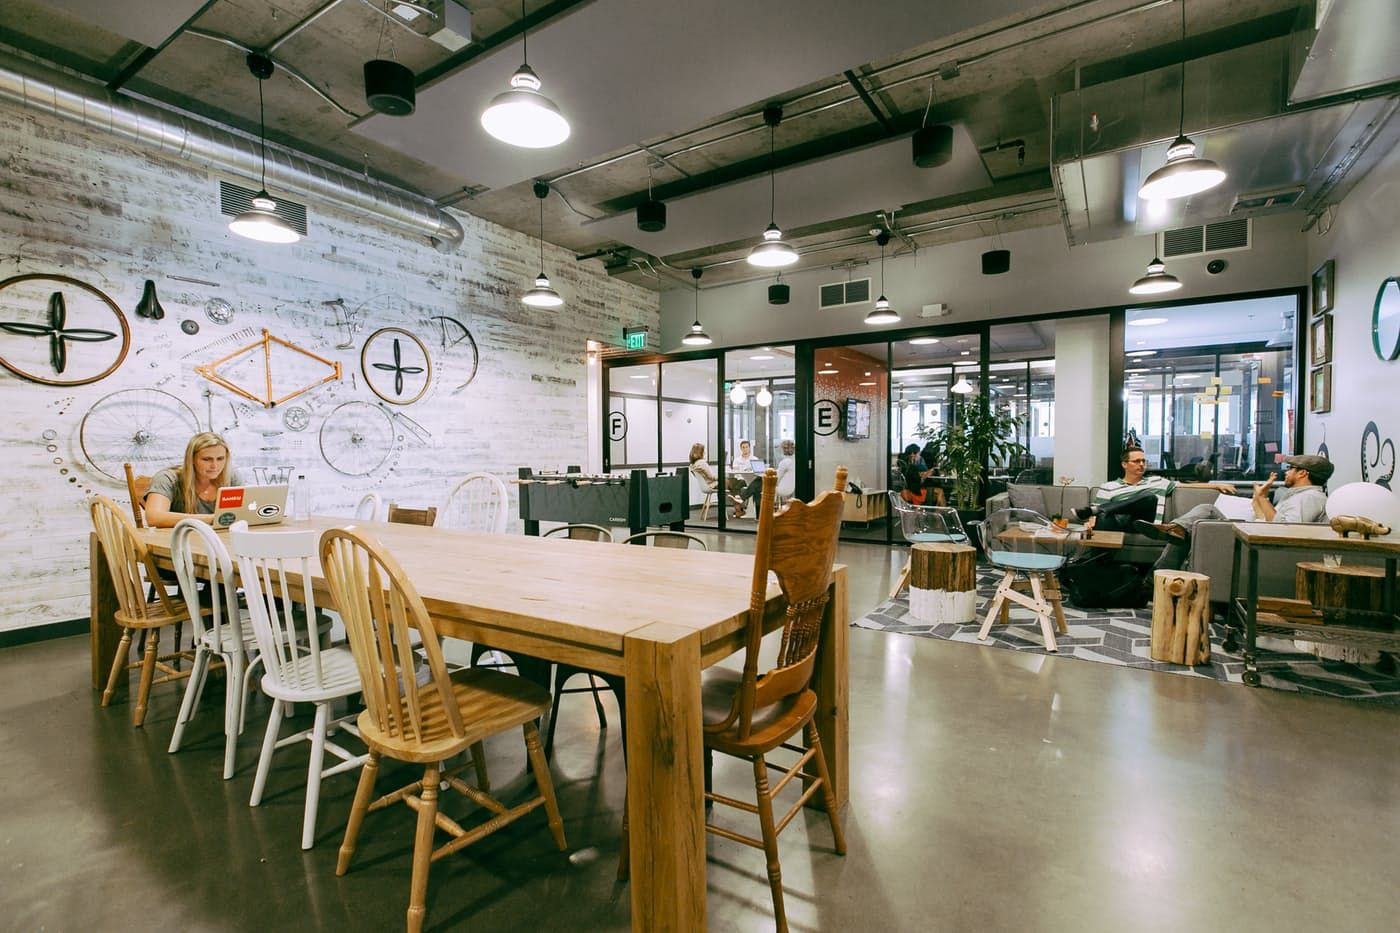 Wework South Lake Union 500 Yale Avenue North Seattle Wa 98109 Coworking Space Design Coworking Office Space Inspiration